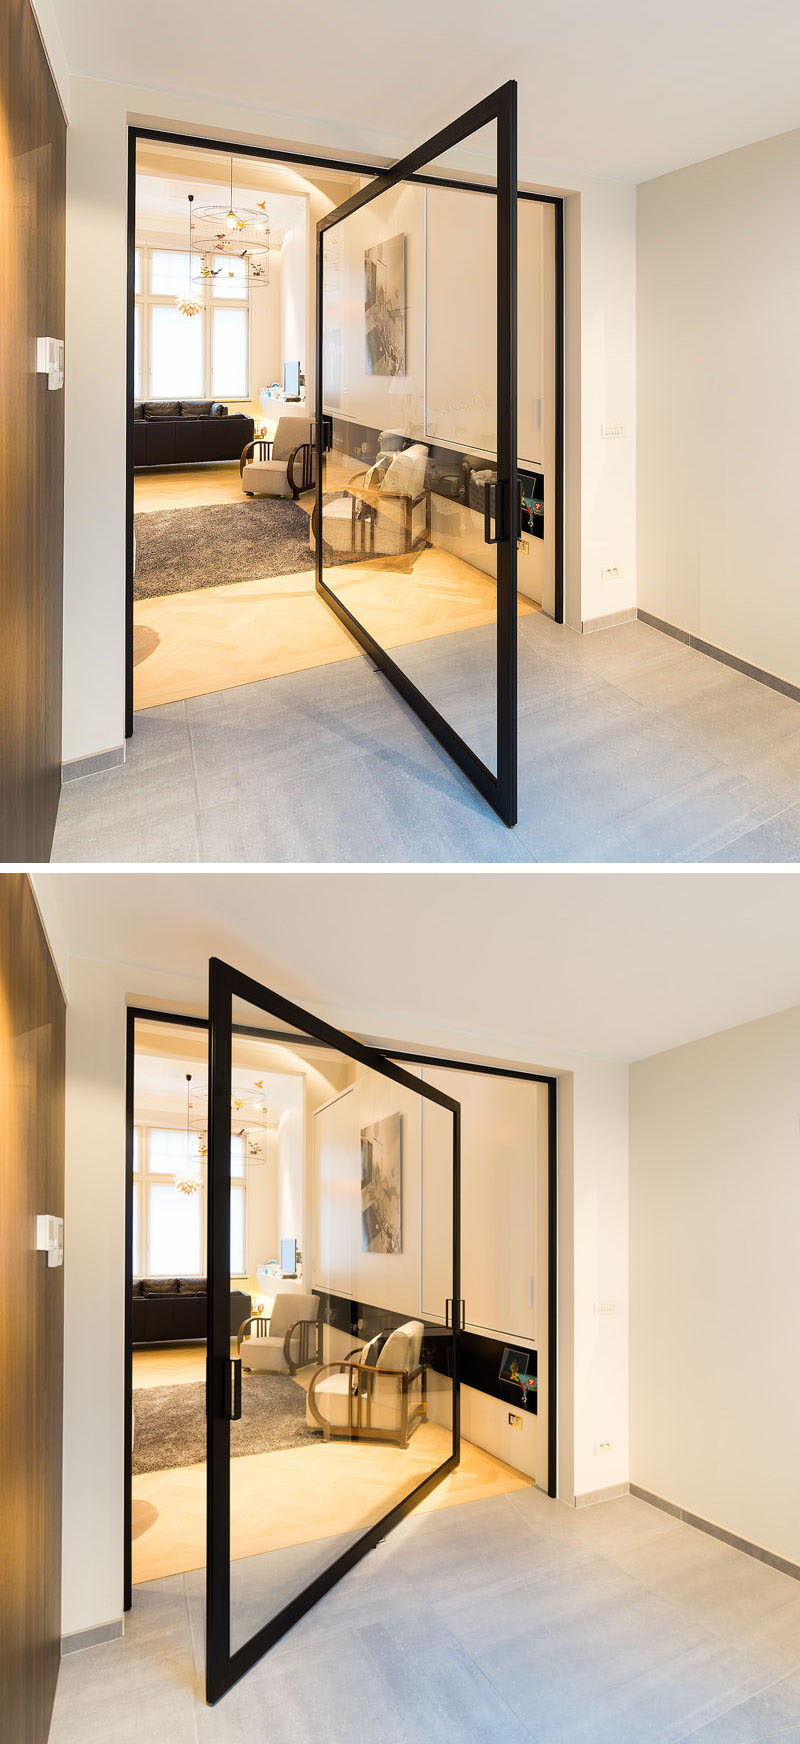 This pivoting glass door can turn a full 360 degrees. #PivotingGlassDoor #PivotingDoor #Door